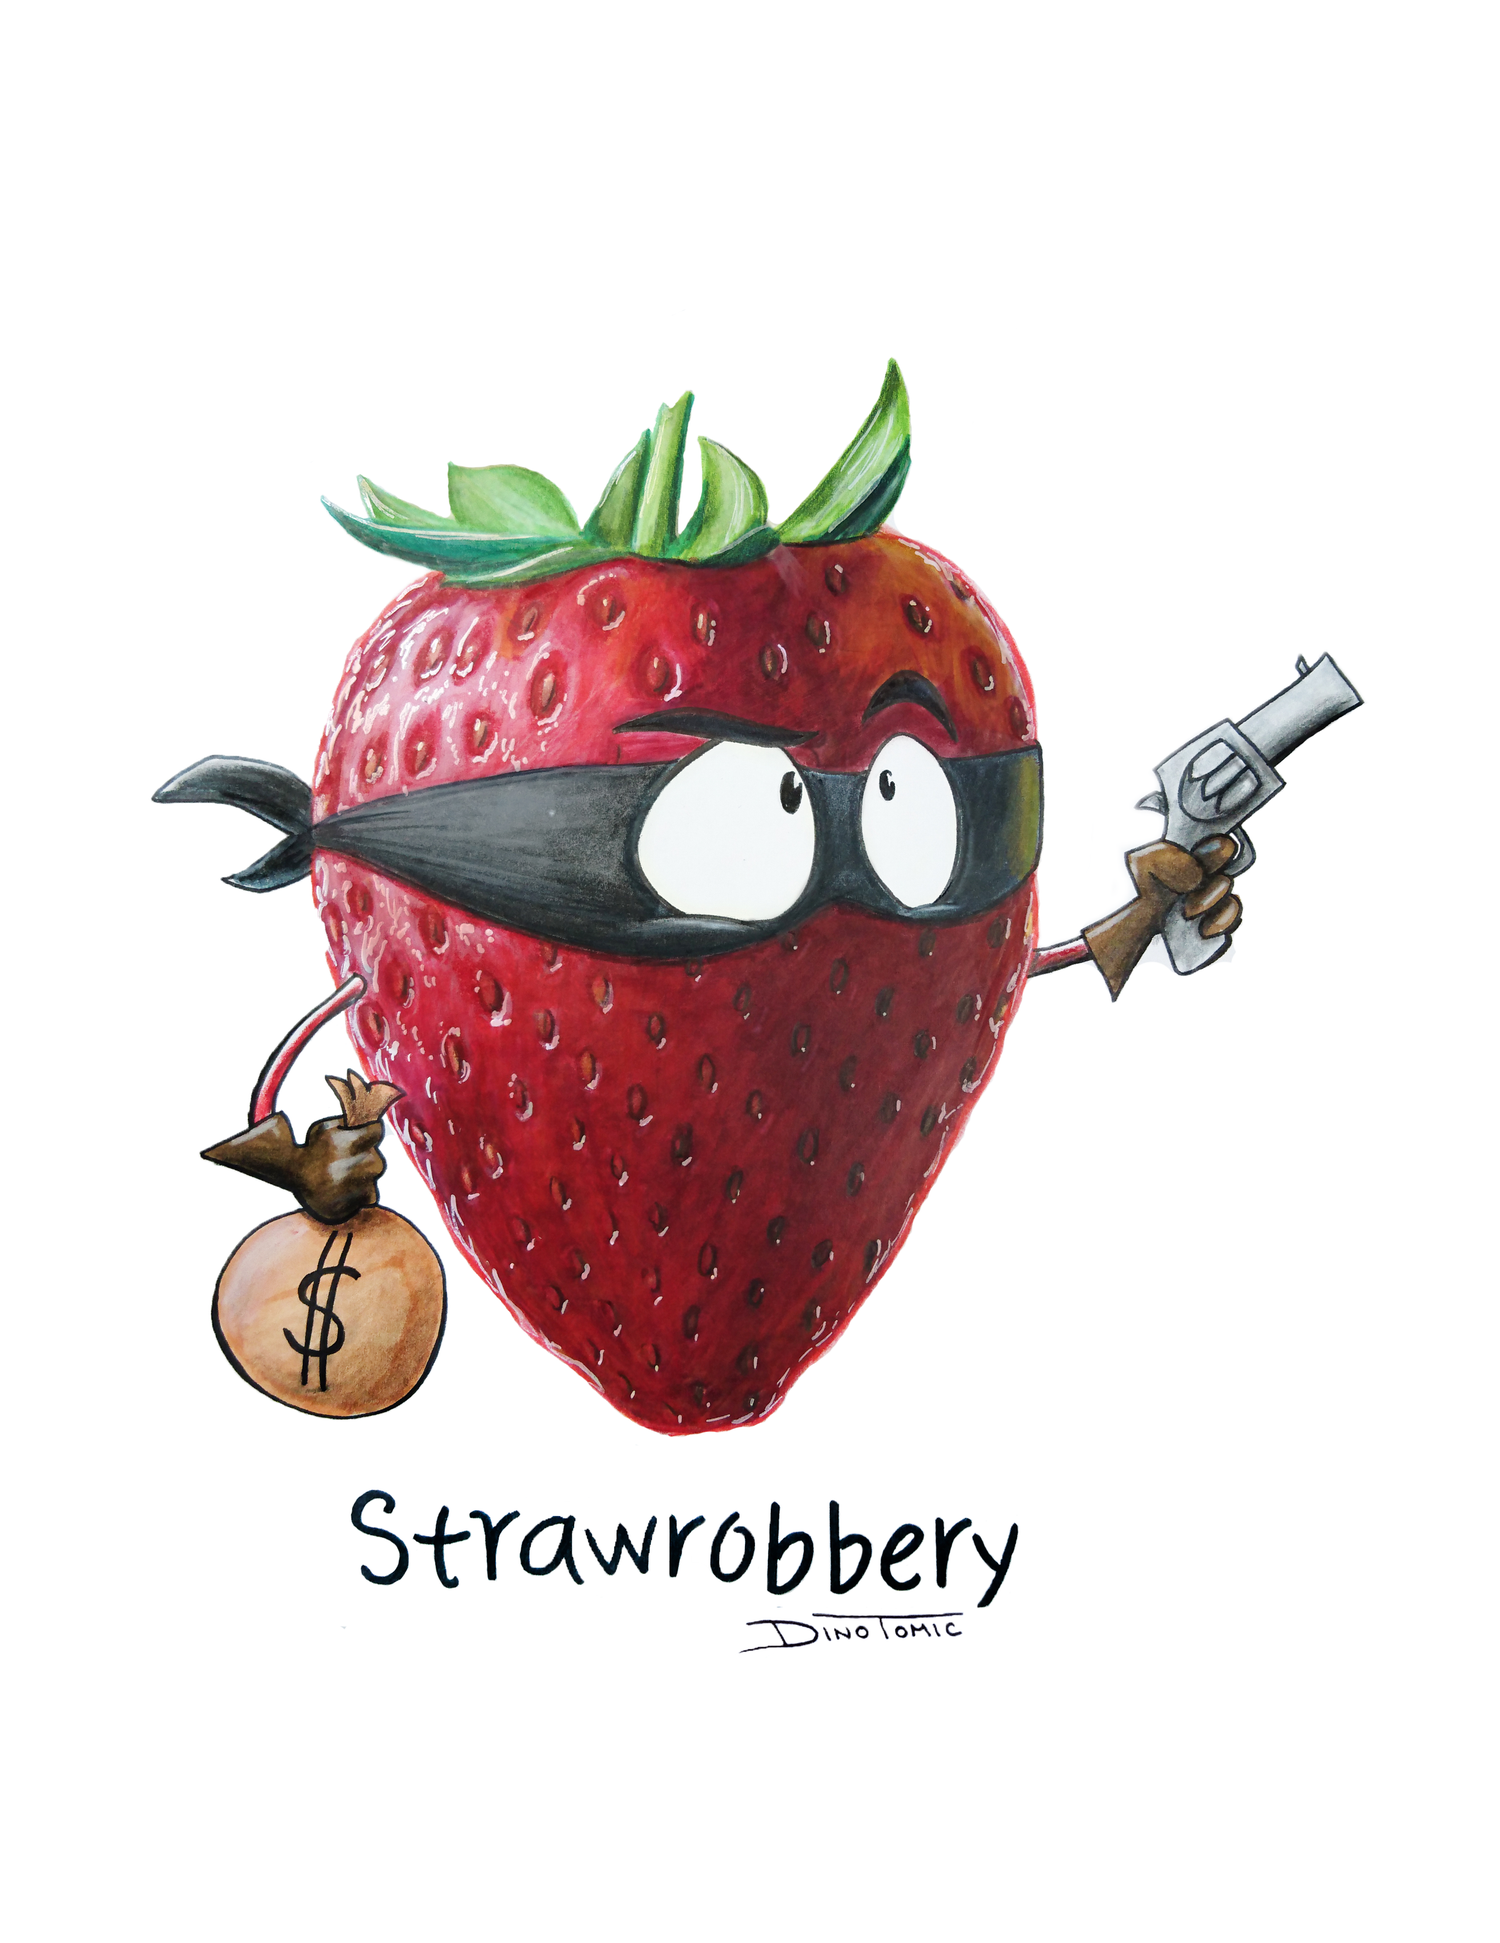 Image of #46 Strawrobbery